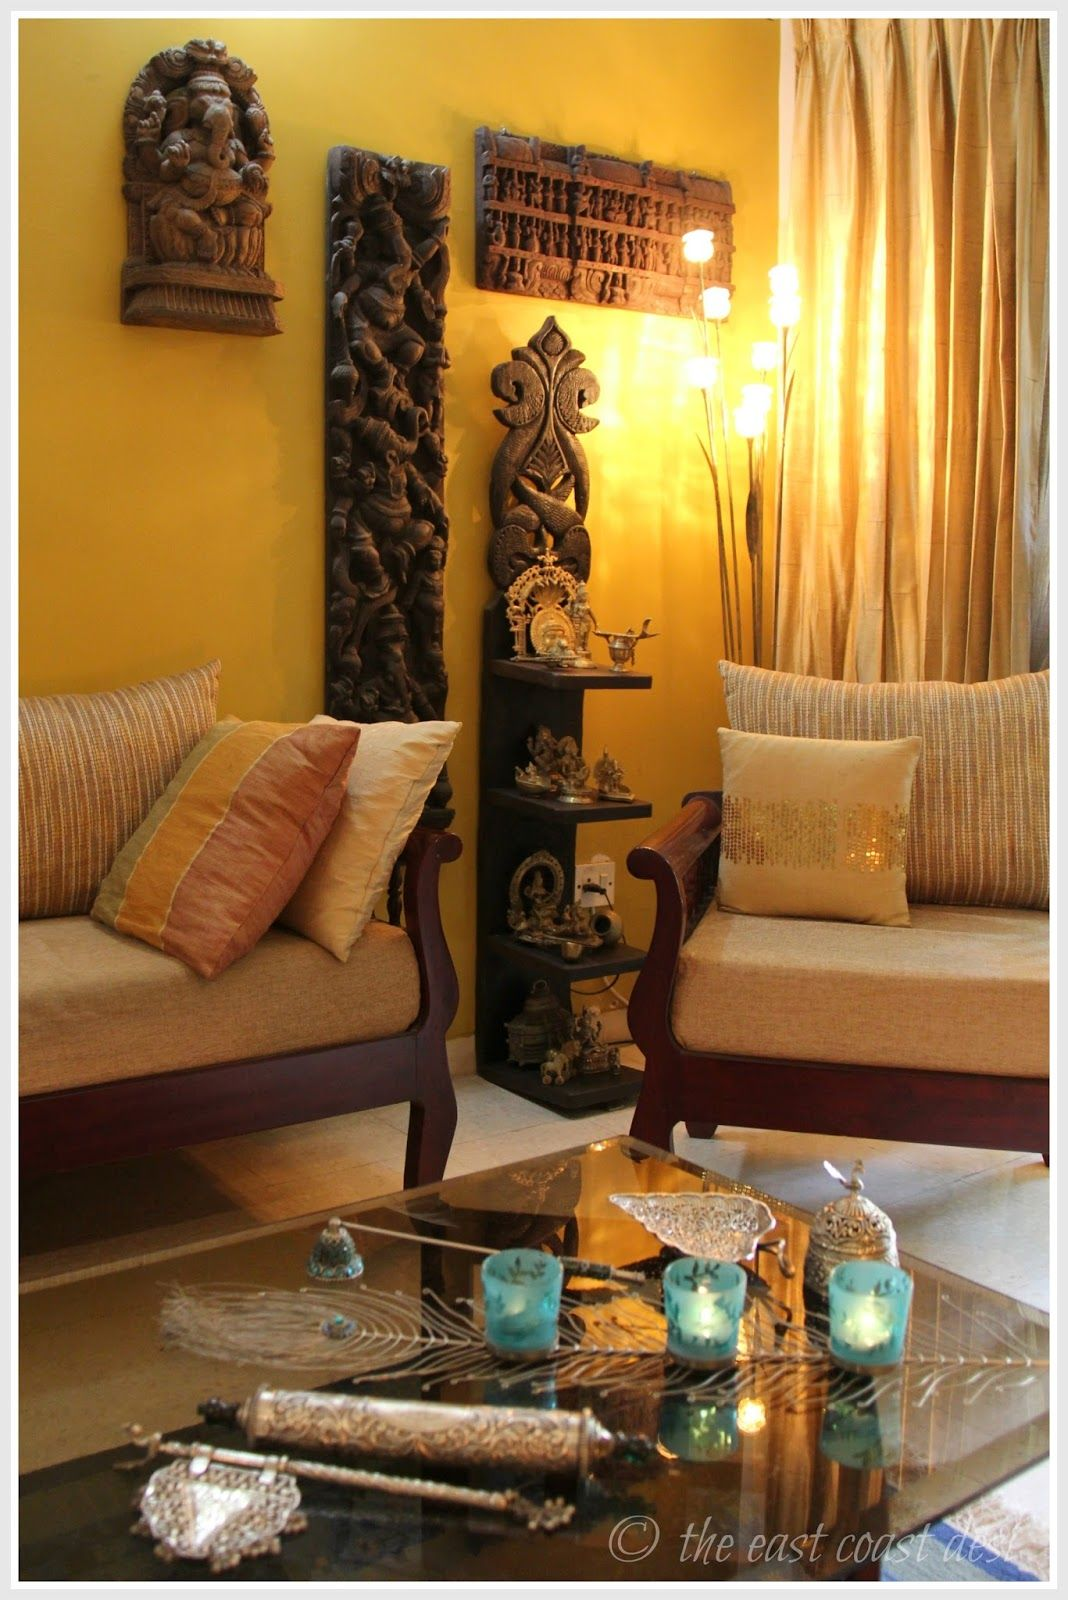 Indian Living Room Ideas The East Coast Desi Living With What You Love Home Tour